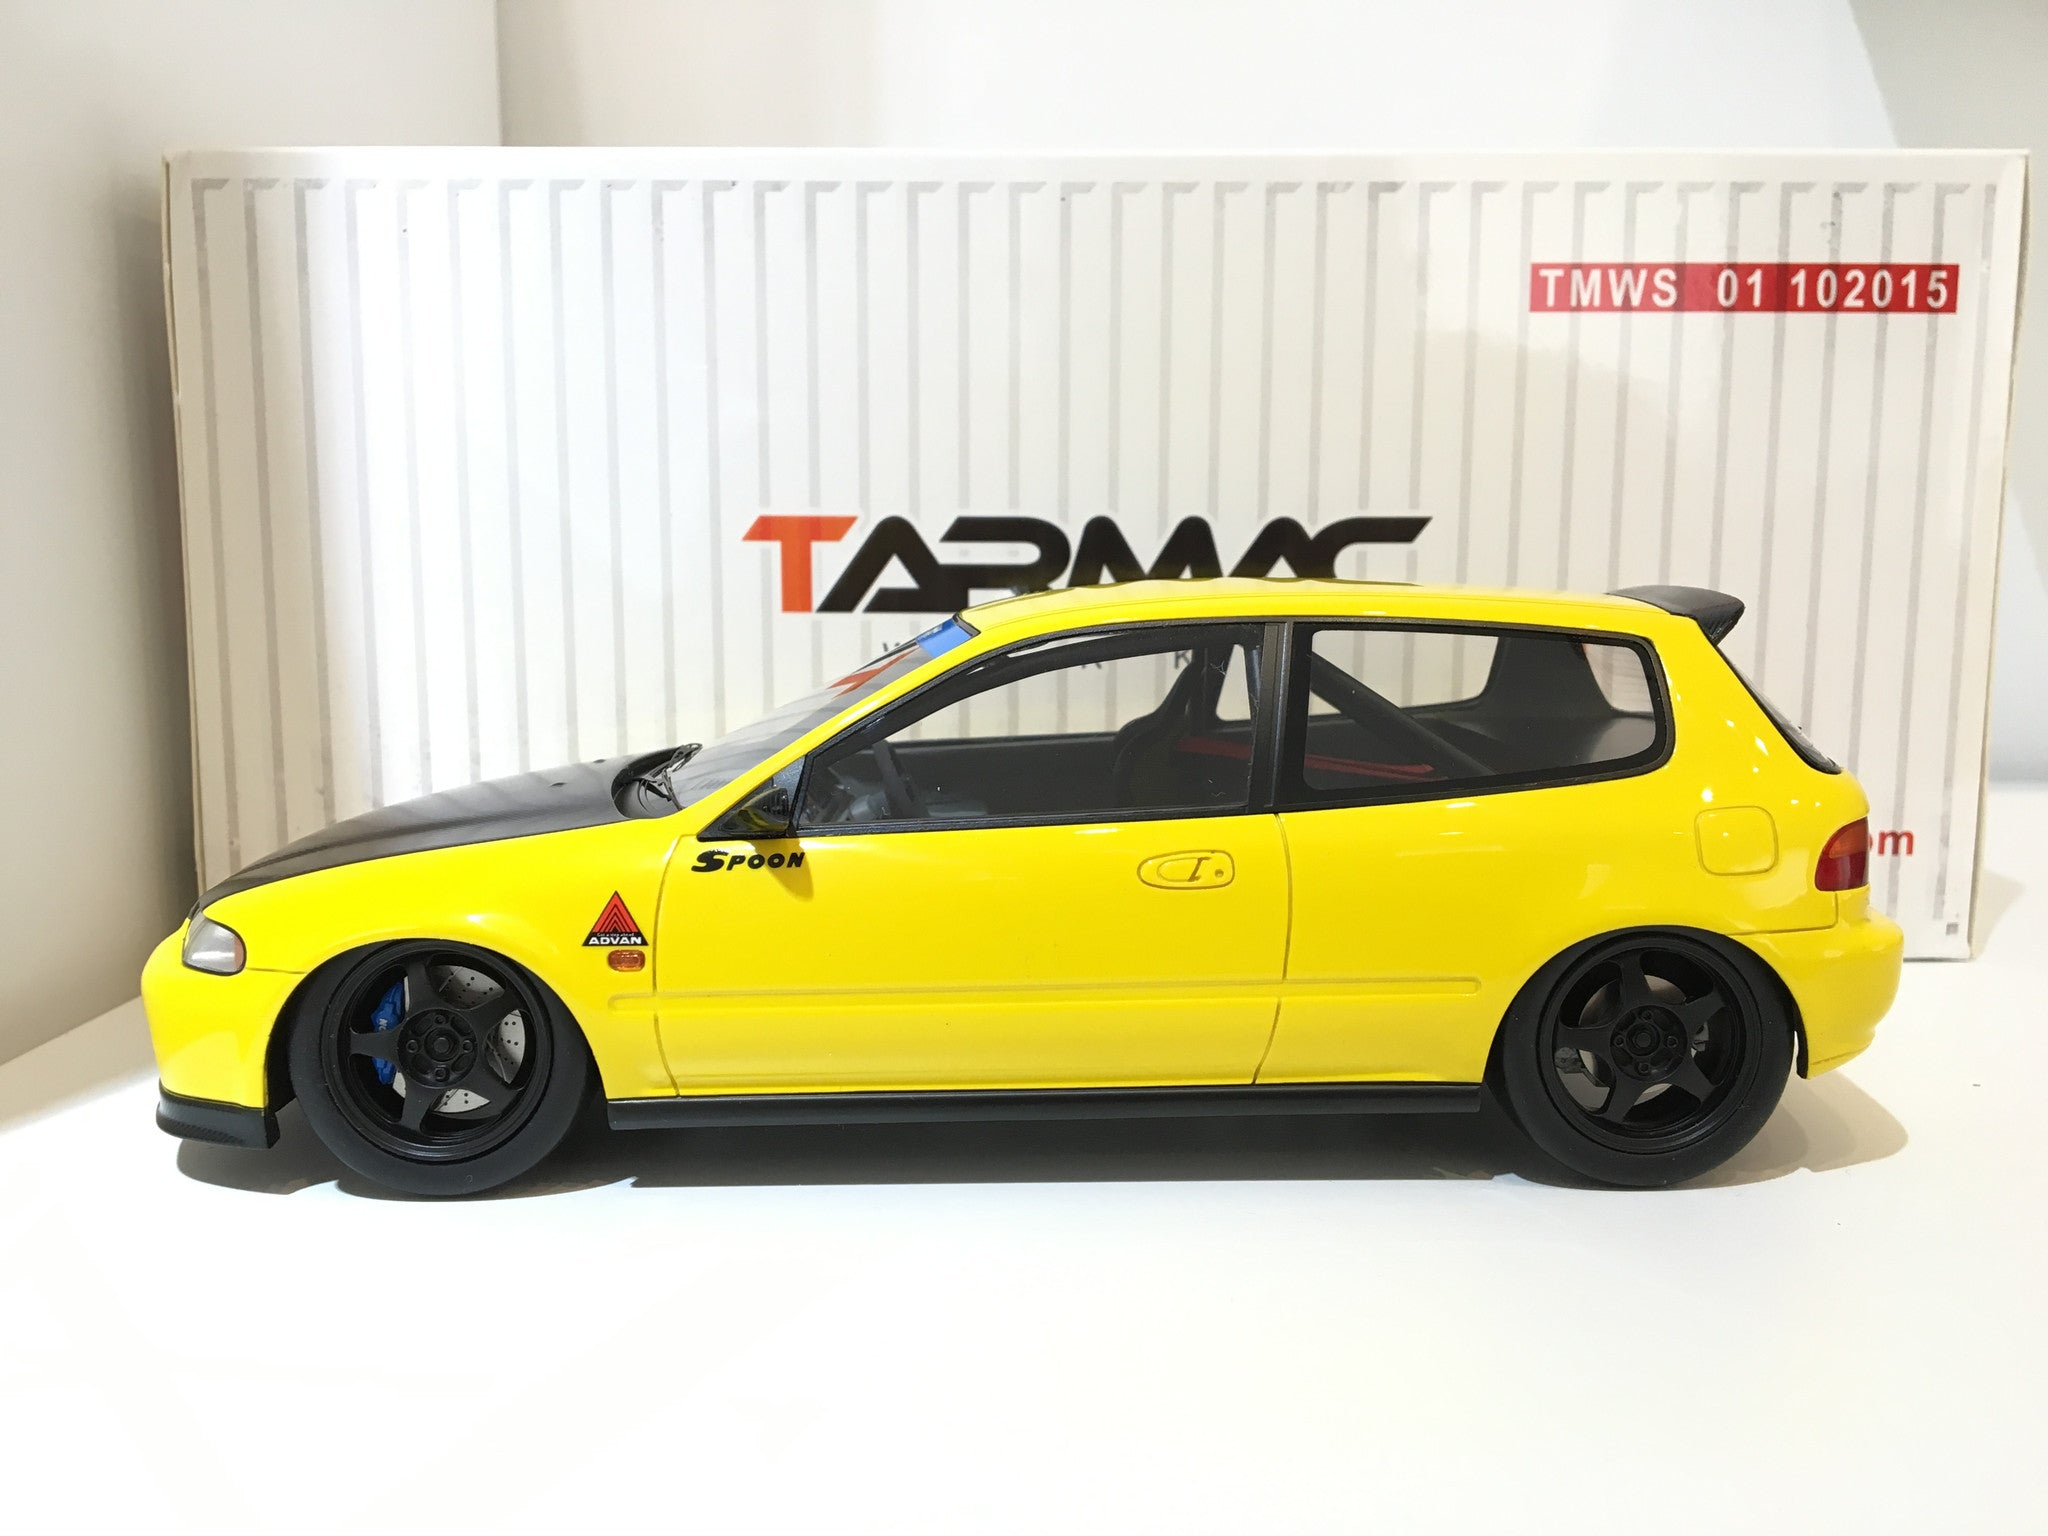 tarmac works 1 18 spoon gr a racing honda civic eg6 yellow t01 yl daboxtoys model cars dmc. Black Bedroom Furniture Sets. Home Design Ideas